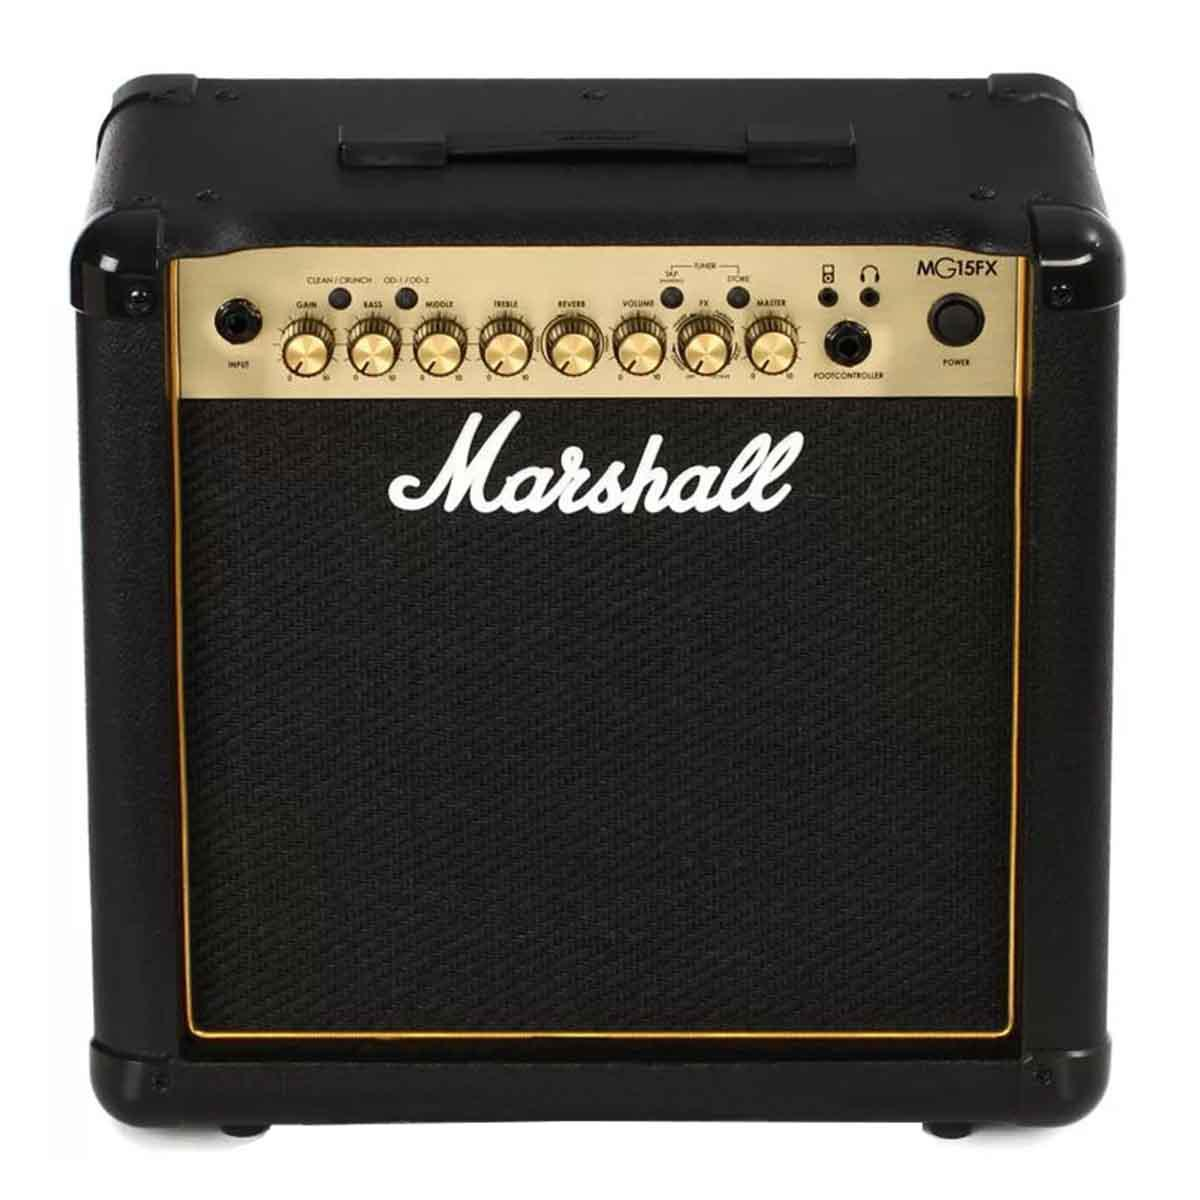 Amplificador de Guitarra Marshall MG15FX Carbon Fiber Gold 15 Watts RMS